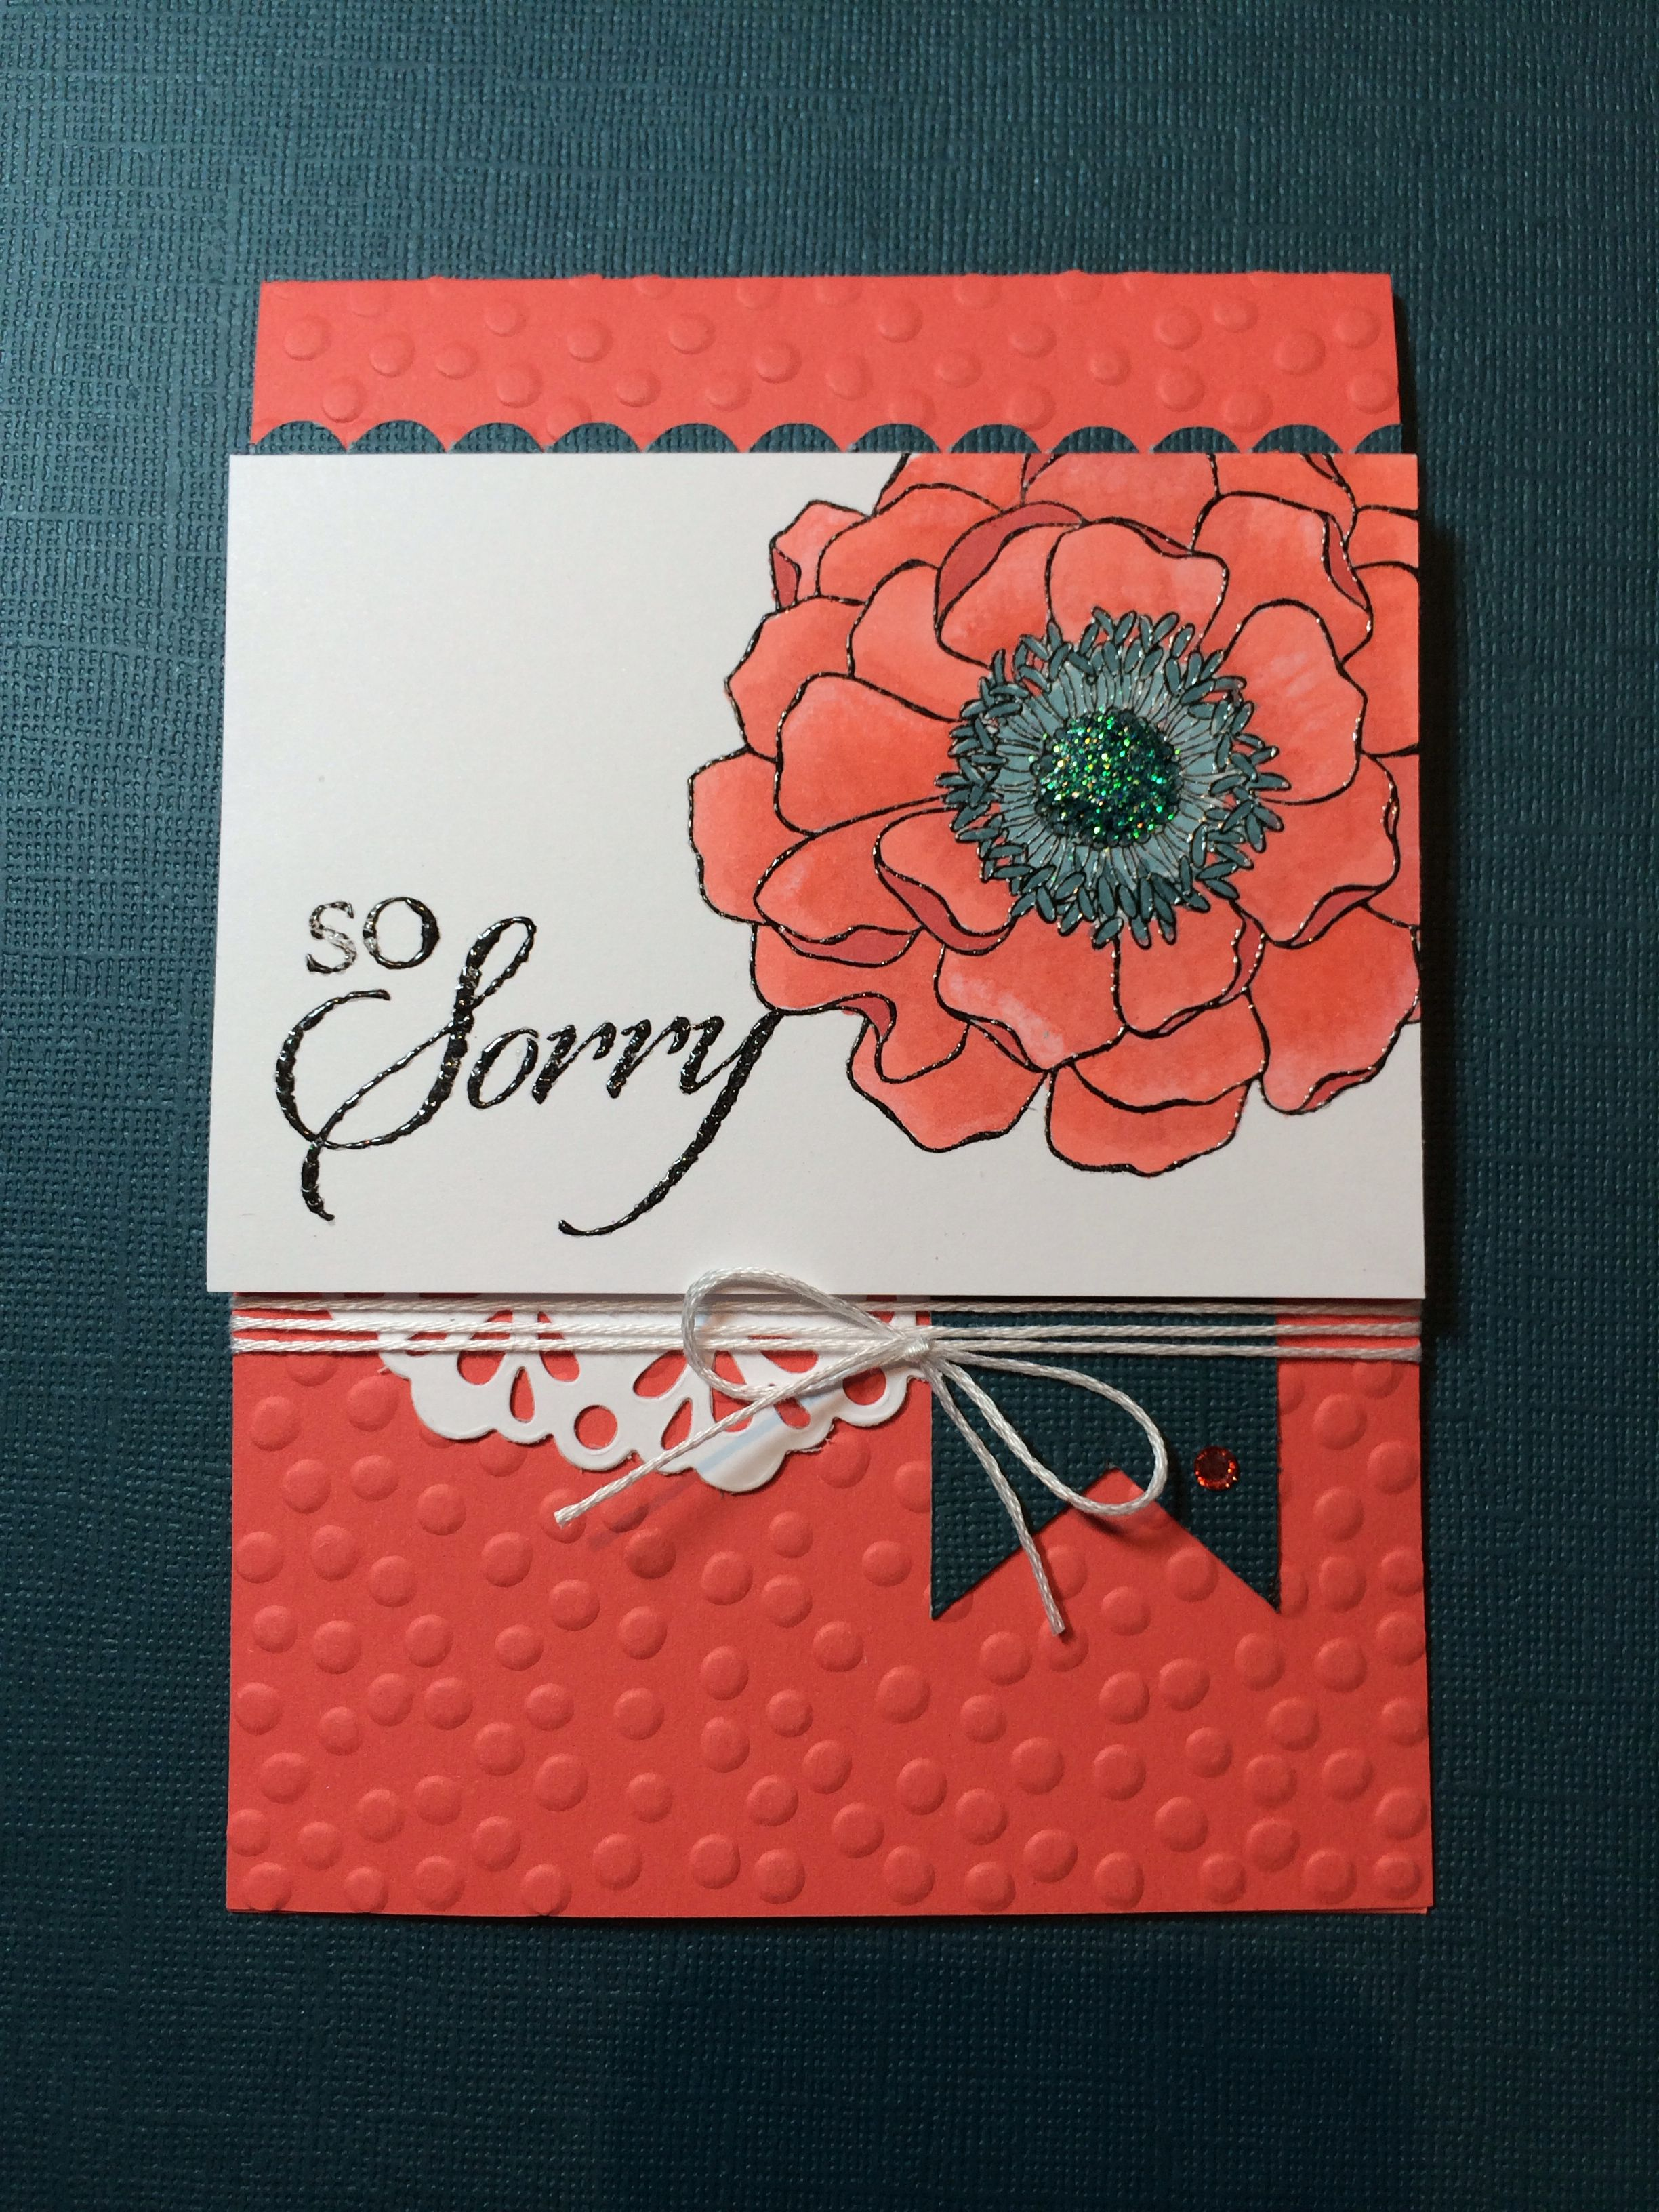 Stampin up card using blended bloom stamp and calypso coral blend abilities from the soon to be released 2014/2015 catalogue.